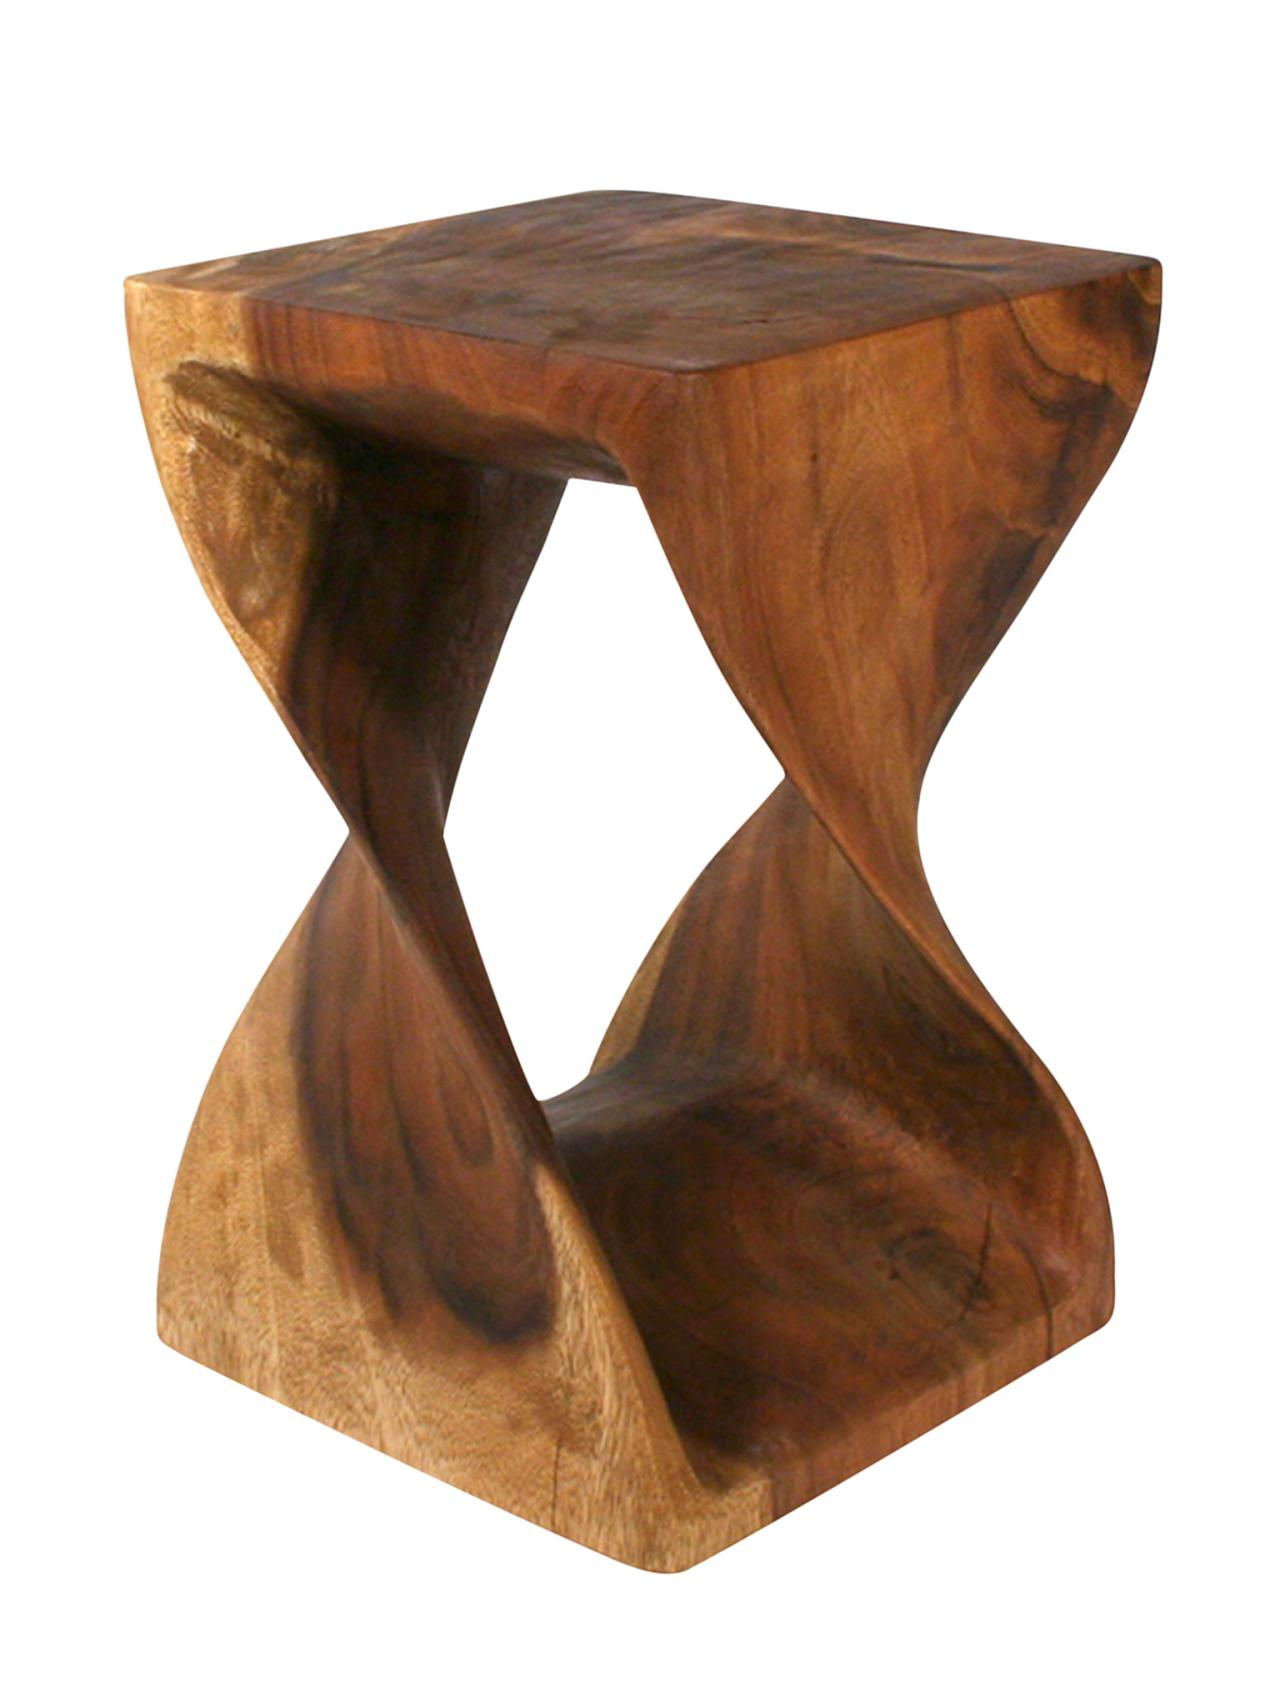 target mirrored accent table the outrageous awesome log style end coffee cedar tables cabin geometric rustic trunk white set round full size diy ideas pottery barn counter stools